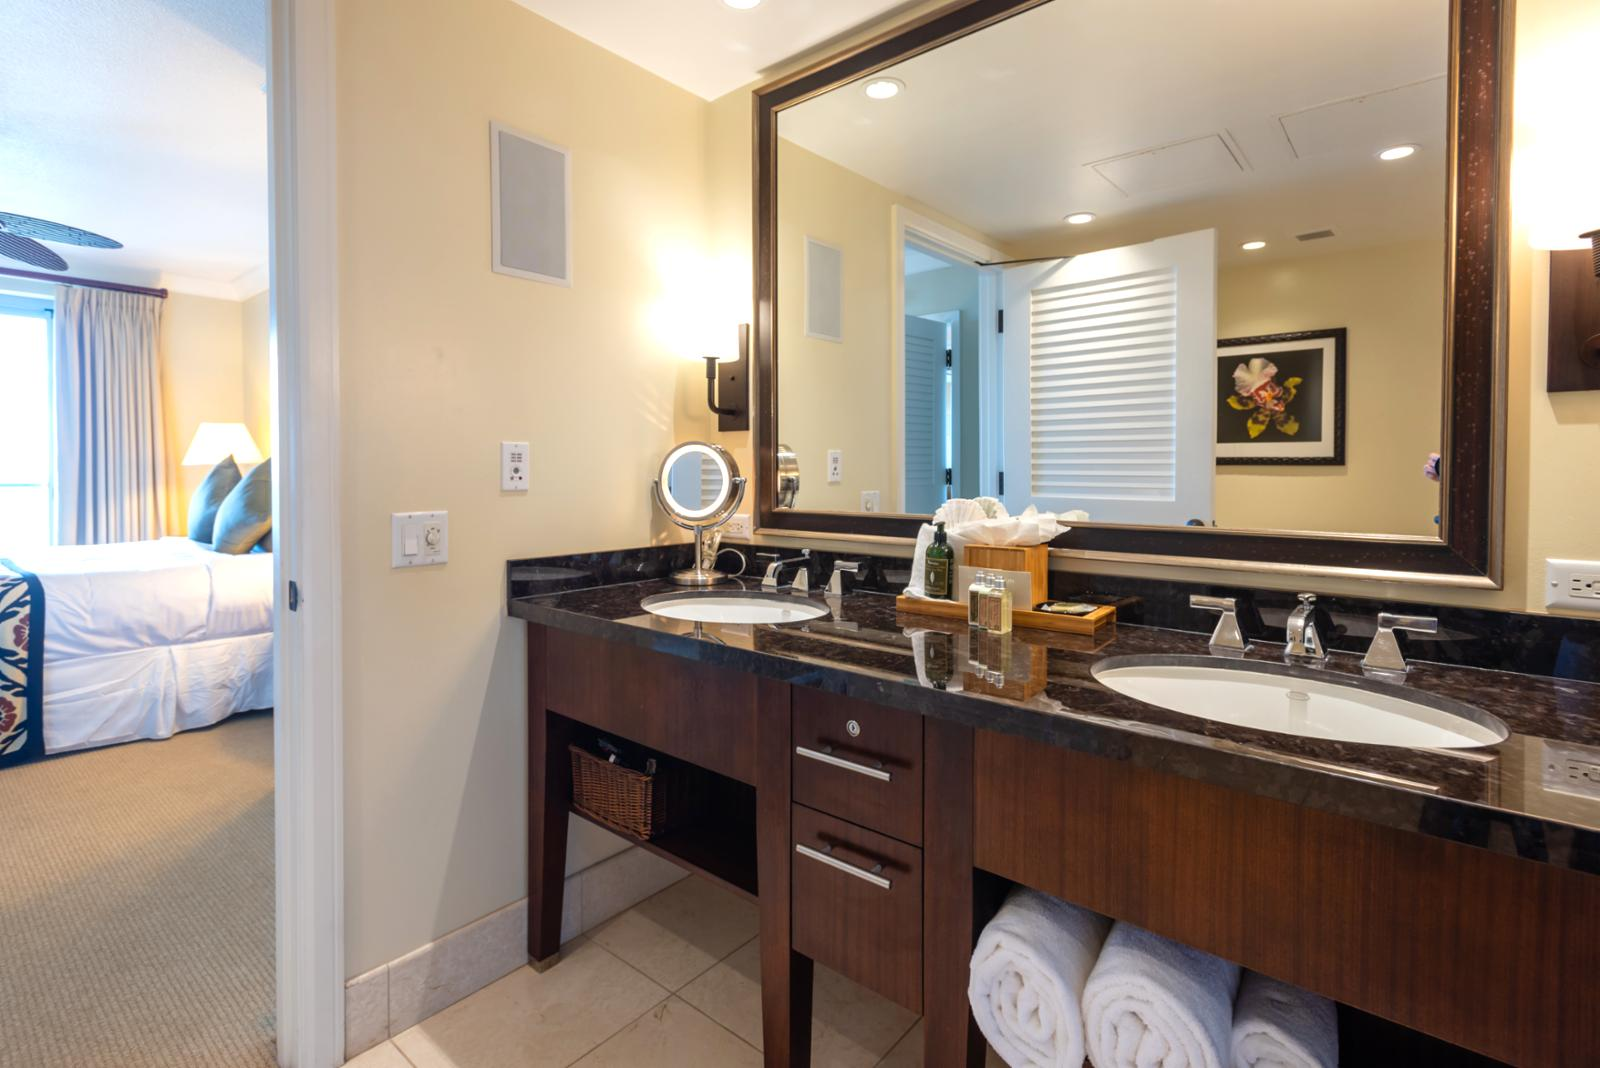 Oversized mirror and dual sink combination complete with amenities